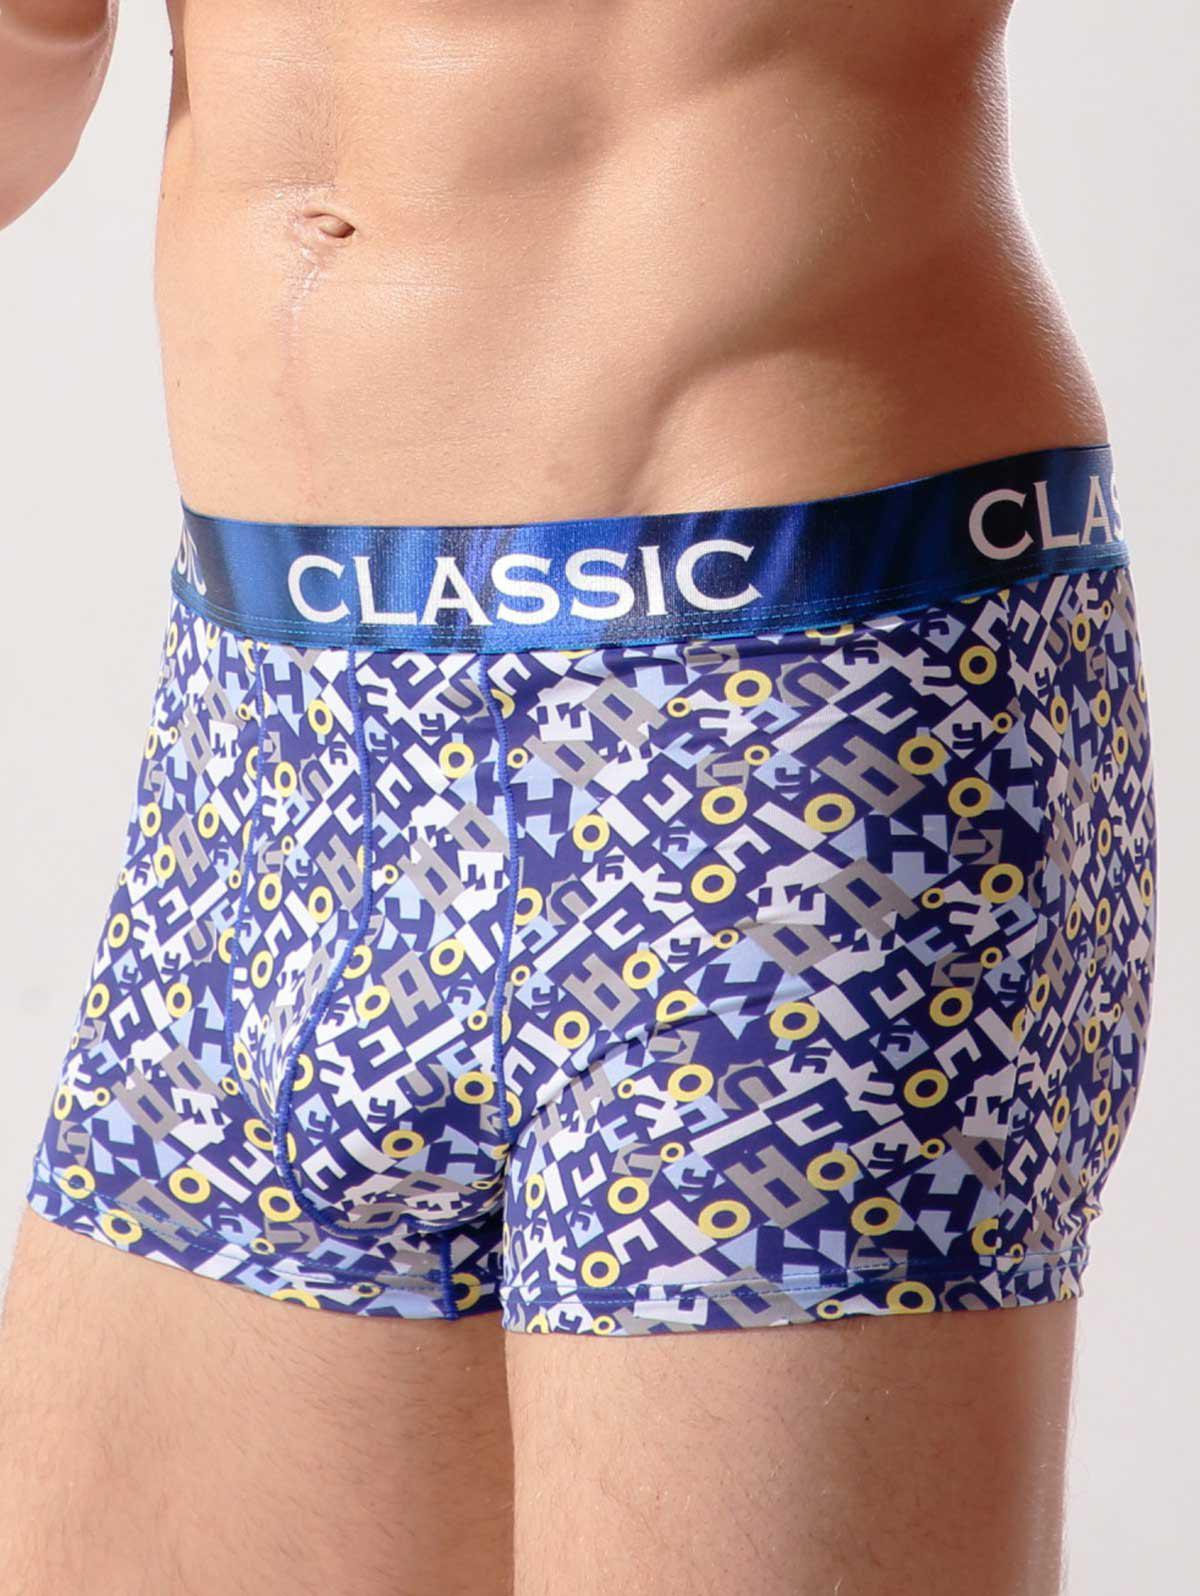 Contour Pouch Eyelet Print Swimming Trunks - COLORMIX XL